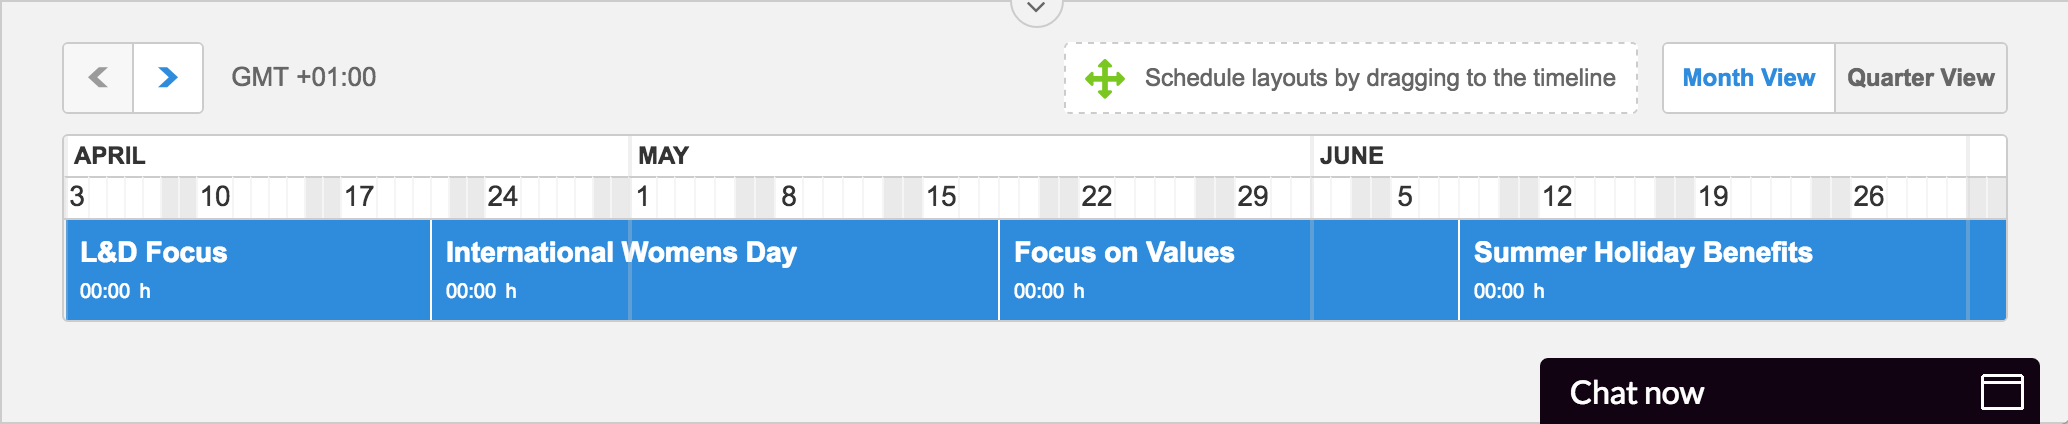 SmartHub_Scheduler_-_Quarter_View.png